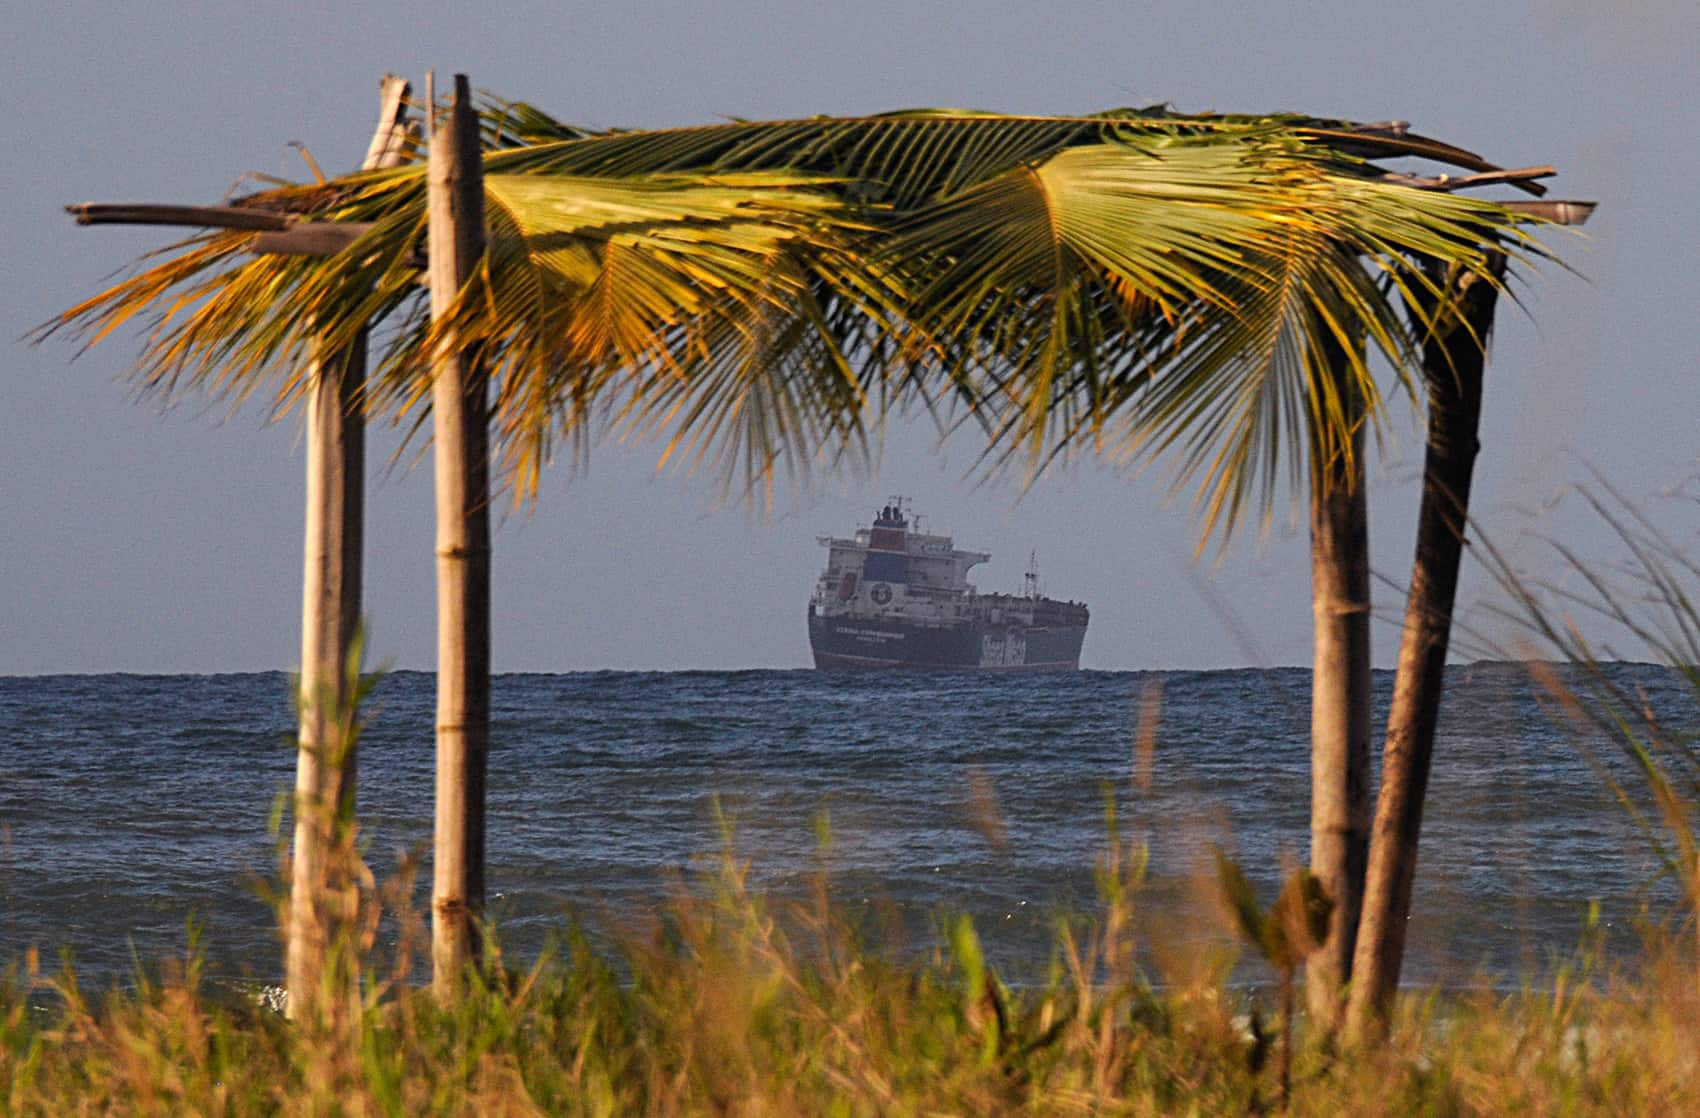 A makeshift beach hut frames a cargo ship waiting to dock at Costa Rica's Moín Port.